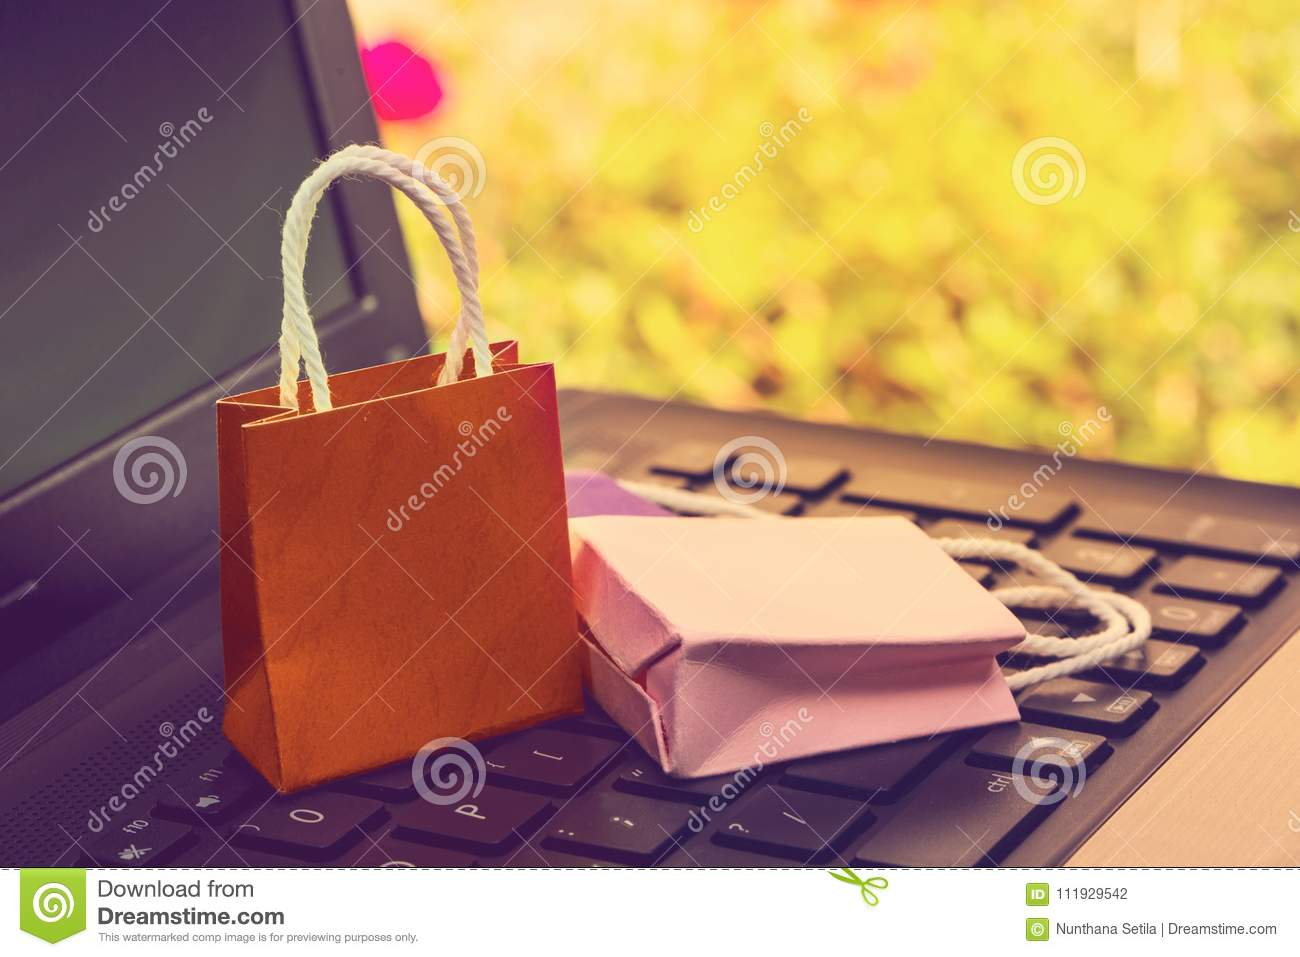 Business concept online shopping, paper shopping bags on notebook keyboard. Online shopping e-commerce or services on